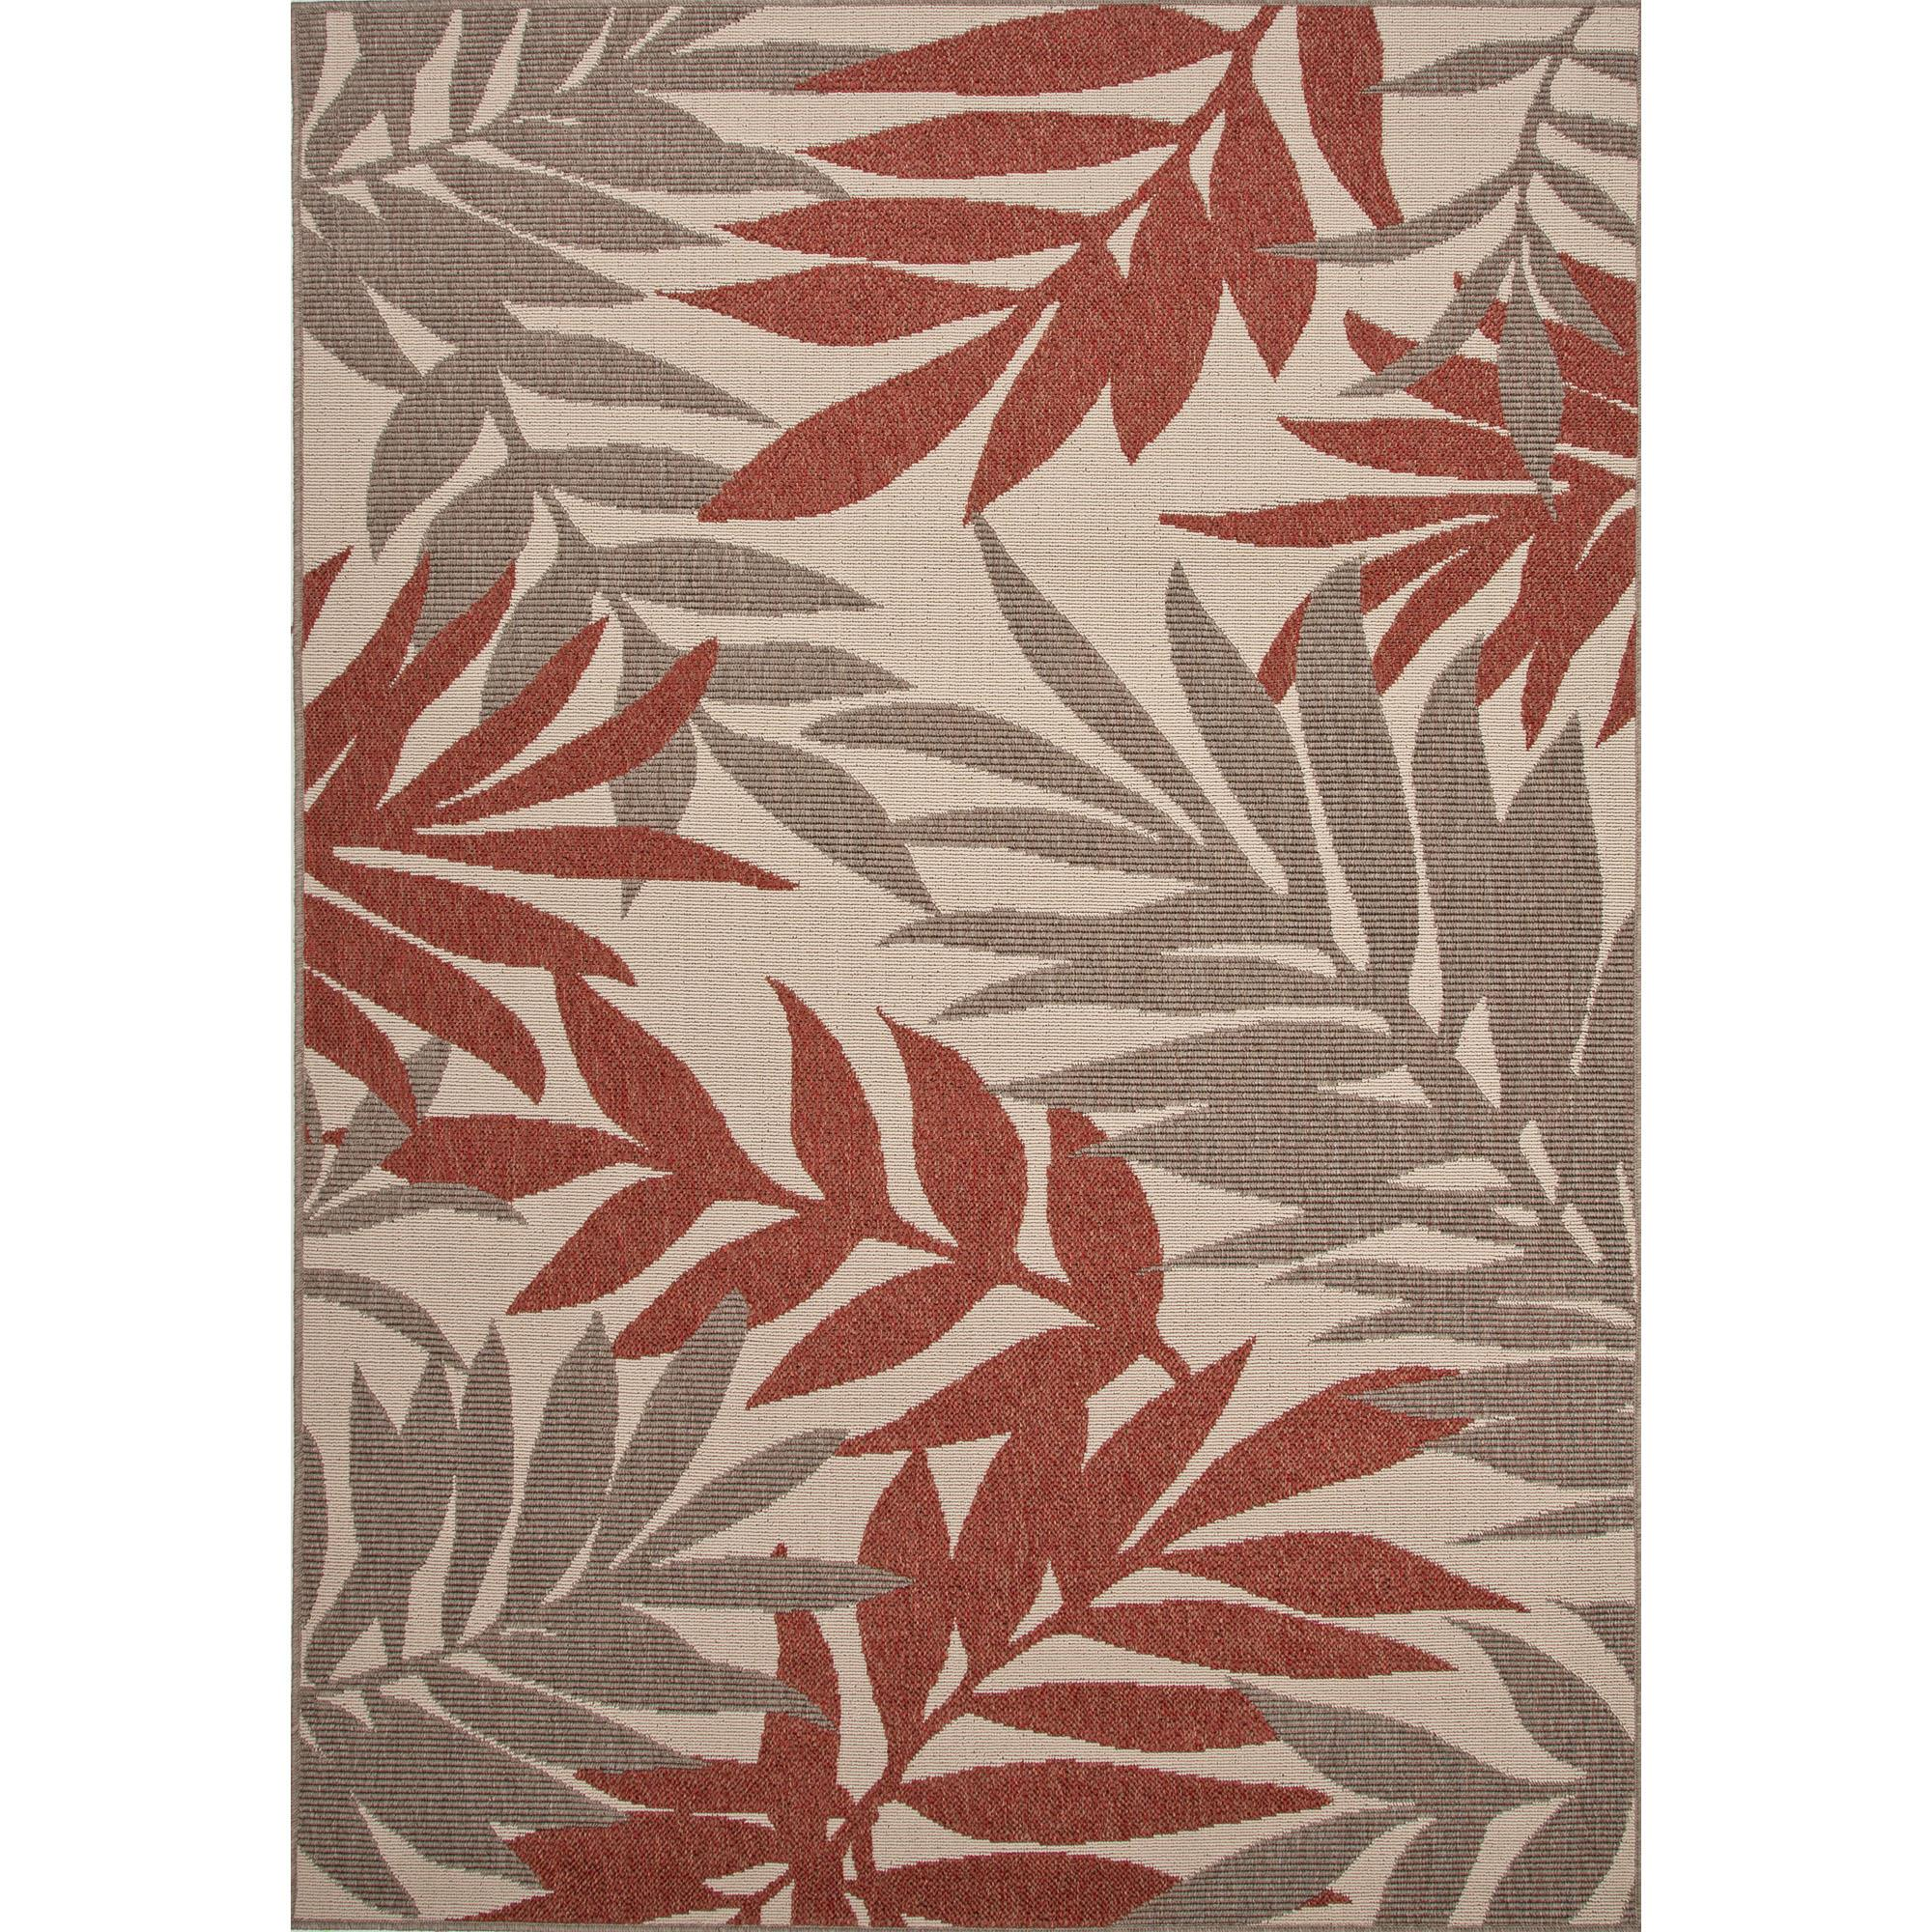 Bloom 7.11 x 10 Rug by JAIPUR Living at Malouf Furniture Co.